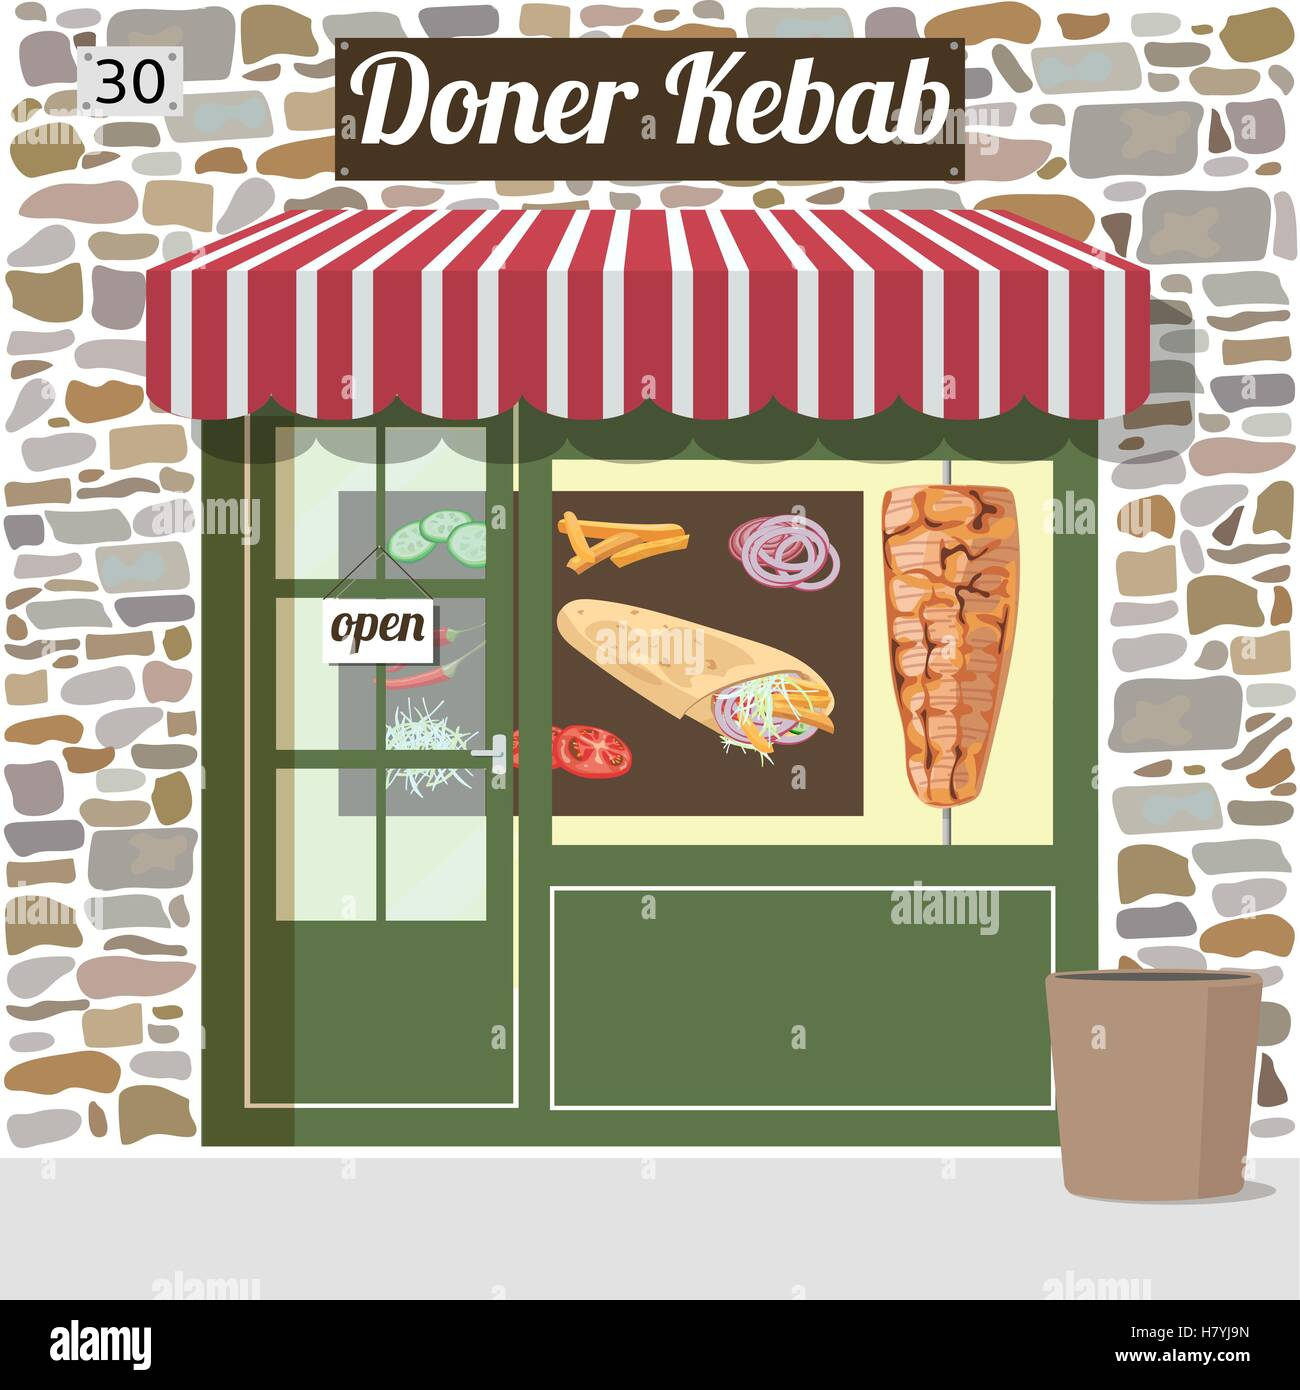 doner kebab fast food cafe - Stock Vector